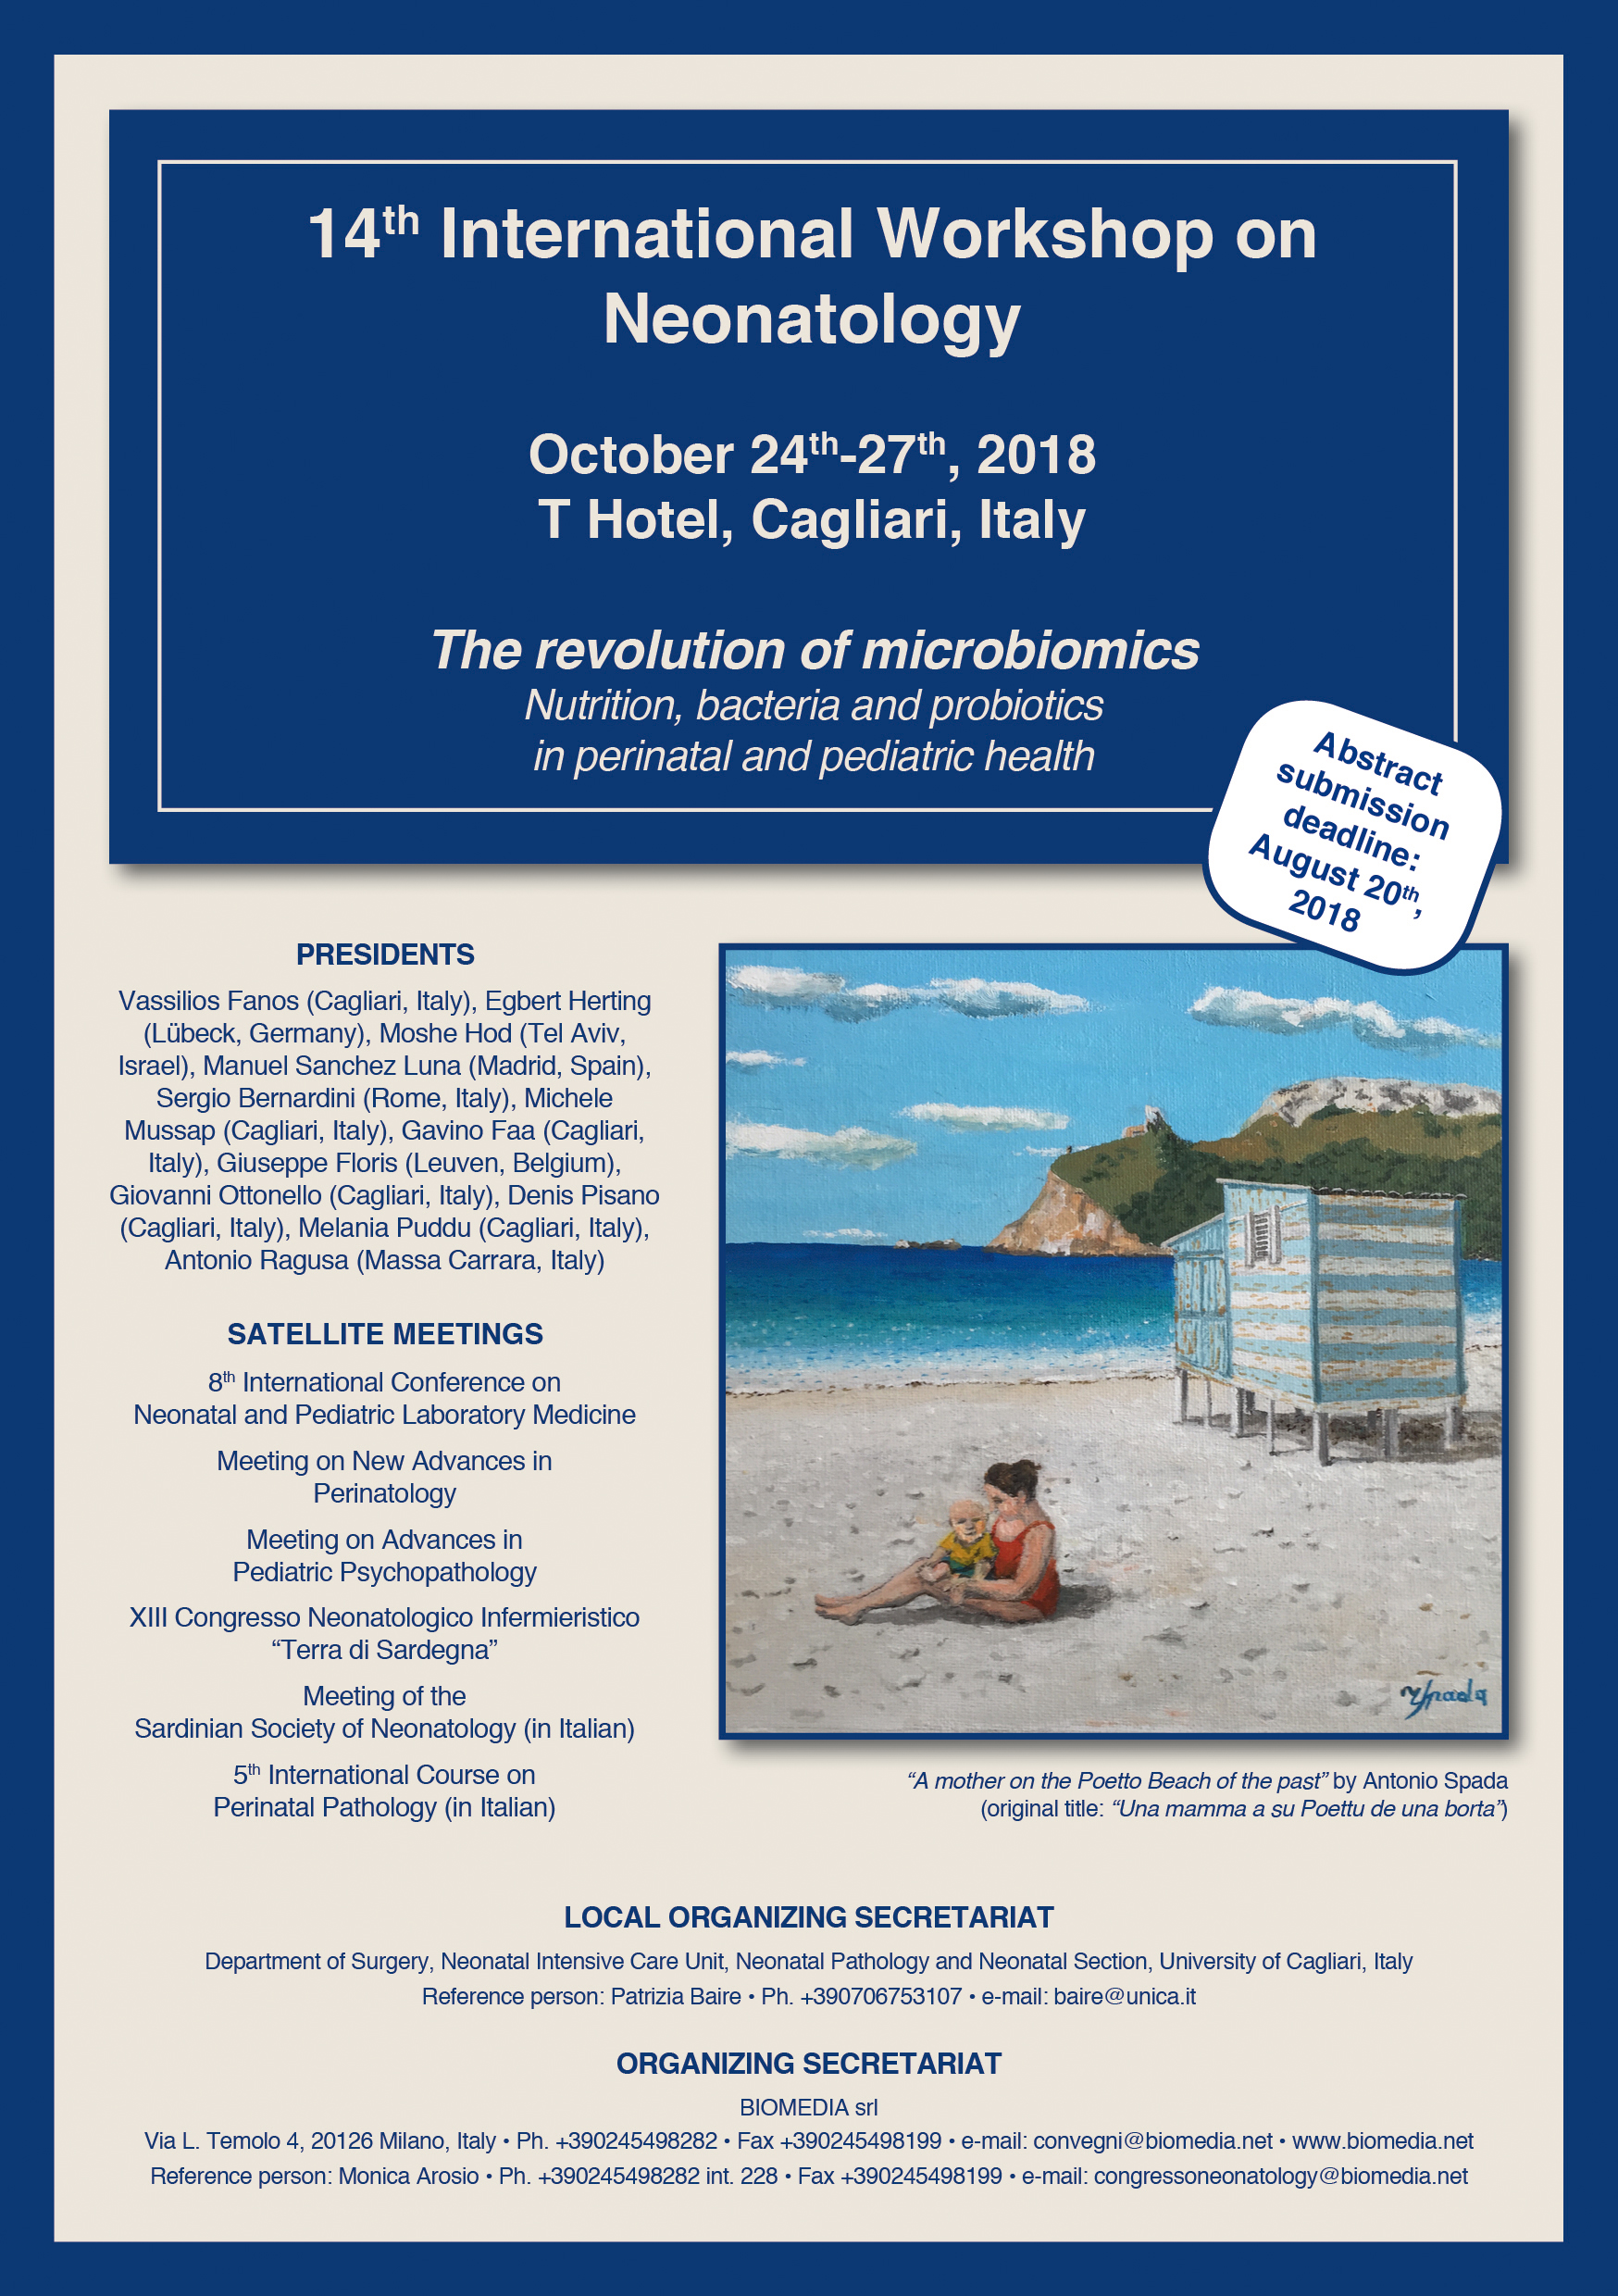 14th International Workshop on Neonatology